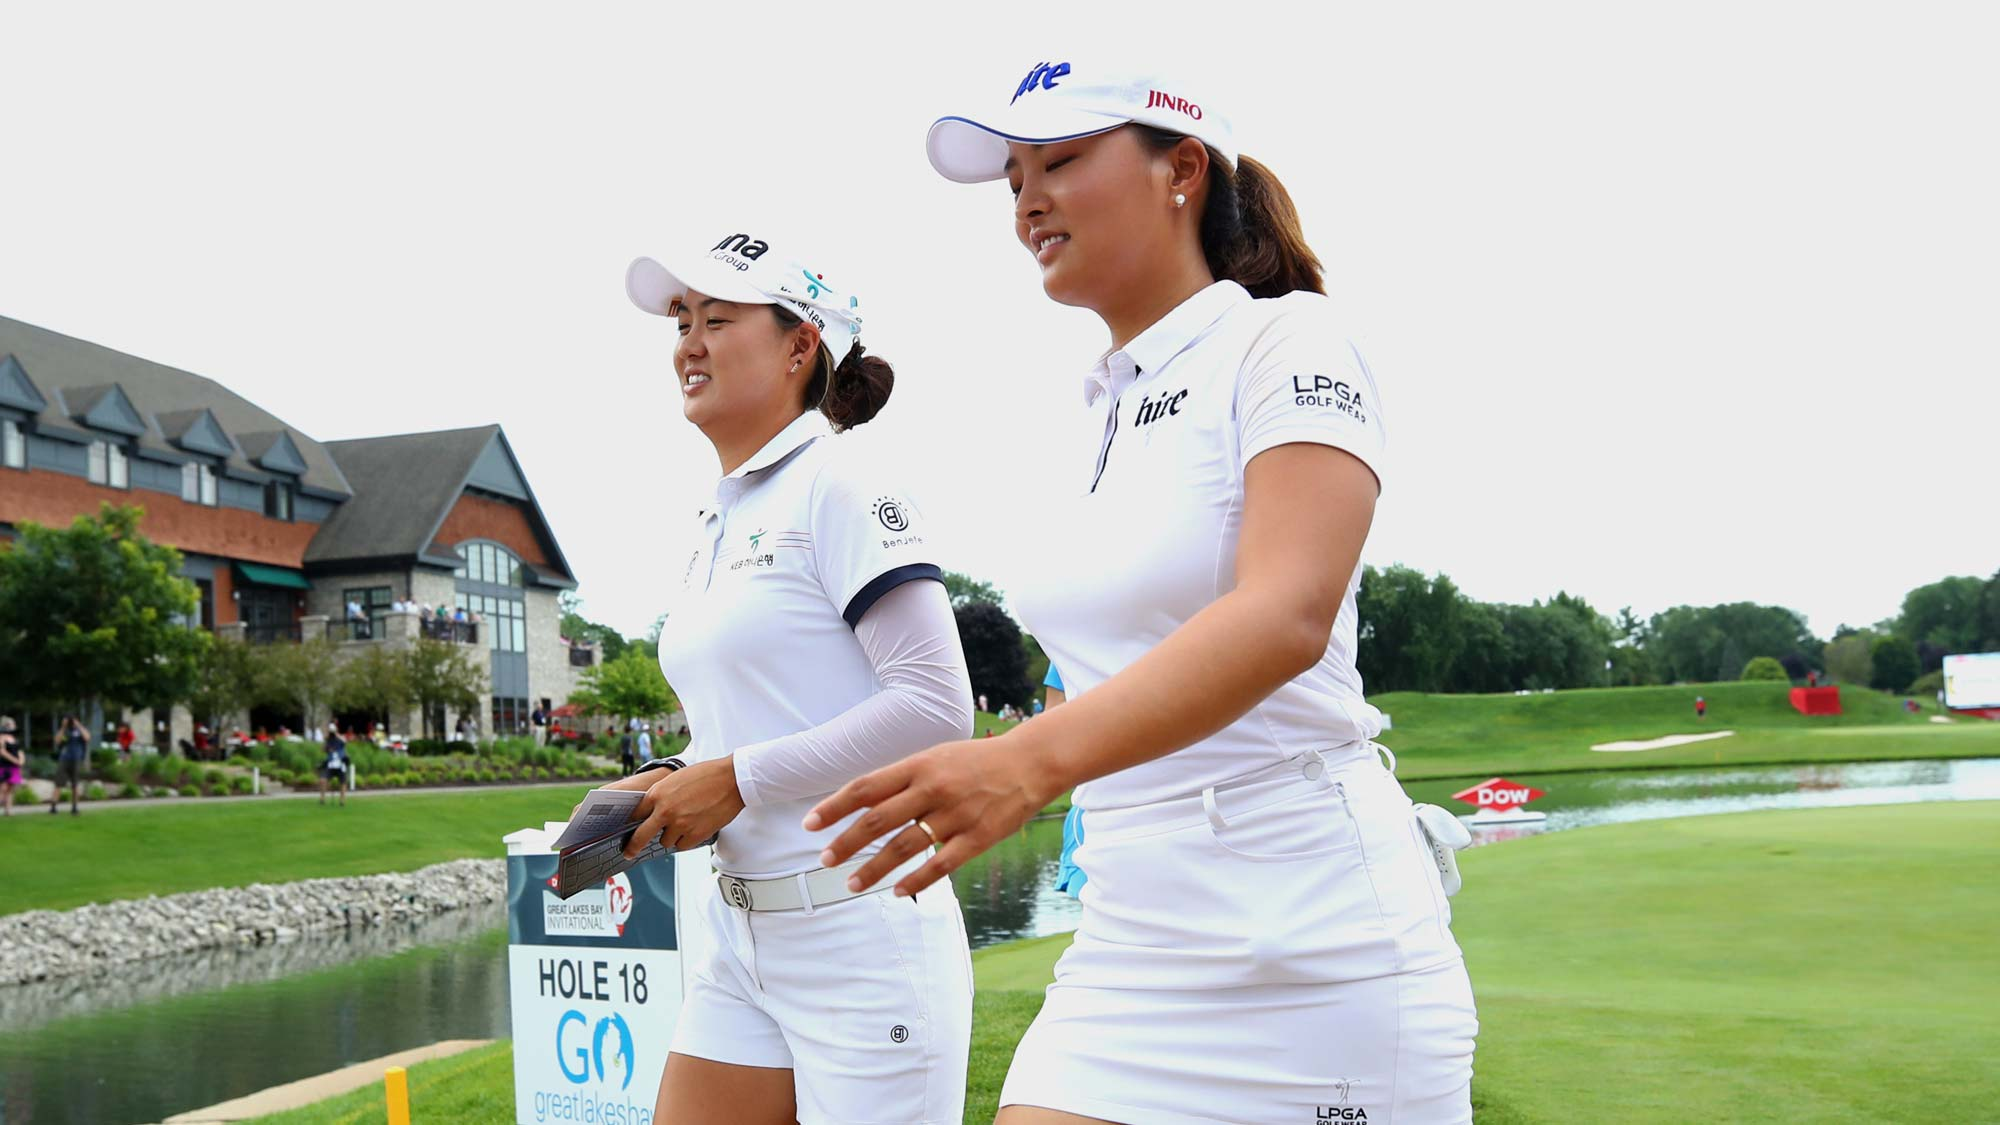 Teammates Minjee Lee of Australia (L) and Jin Young Ko of South Korea walk off the 18th green after their final round of the Dow Great Lakes Bay Invitational